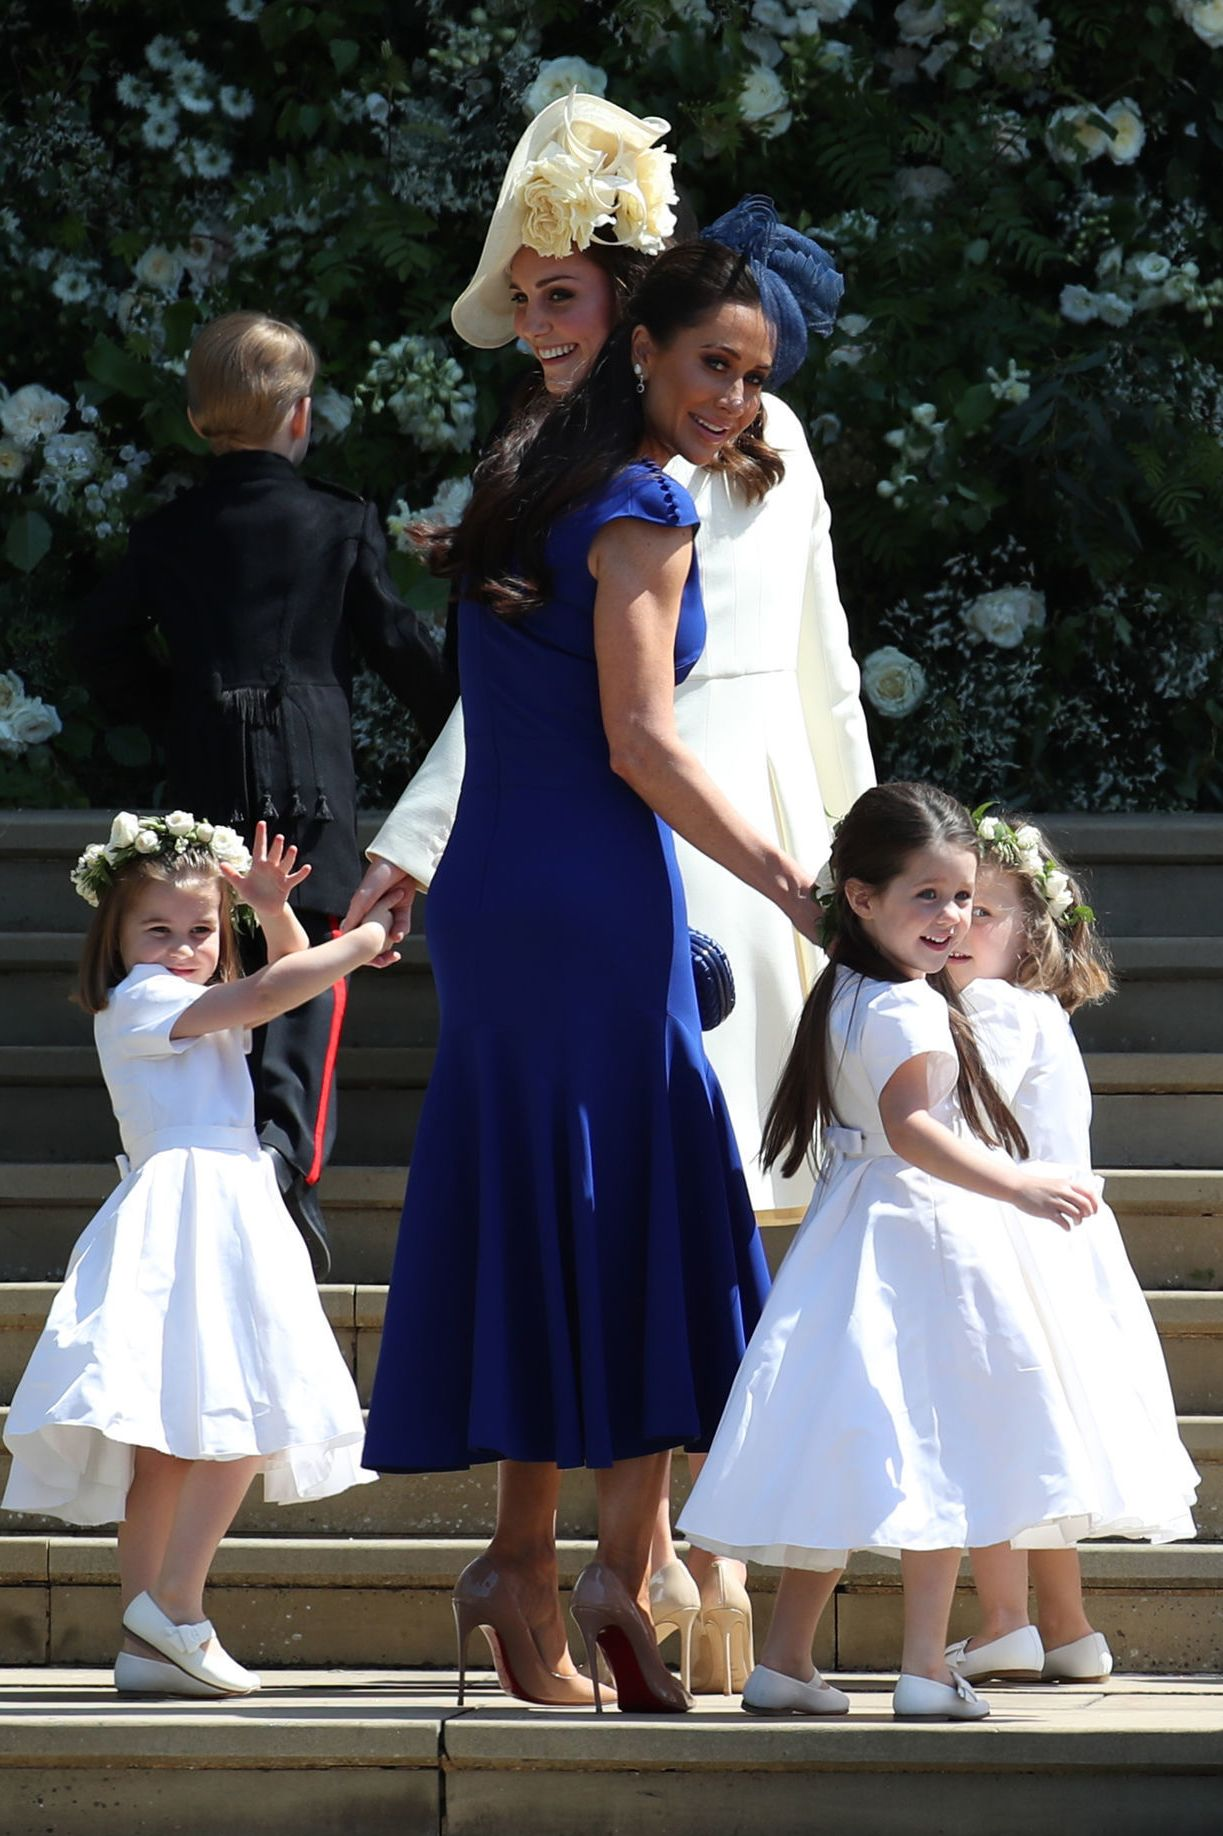 Meghan's best friend Jessica Mulroney wears a royal blue custom tea-length fit and flare dress with cap sleeve button detail by Montreal-based designer Di Carlo Couture with Christian Louboutin heels. MORE : Who Meghan Markle's Best Friend Jessica Mulroney?